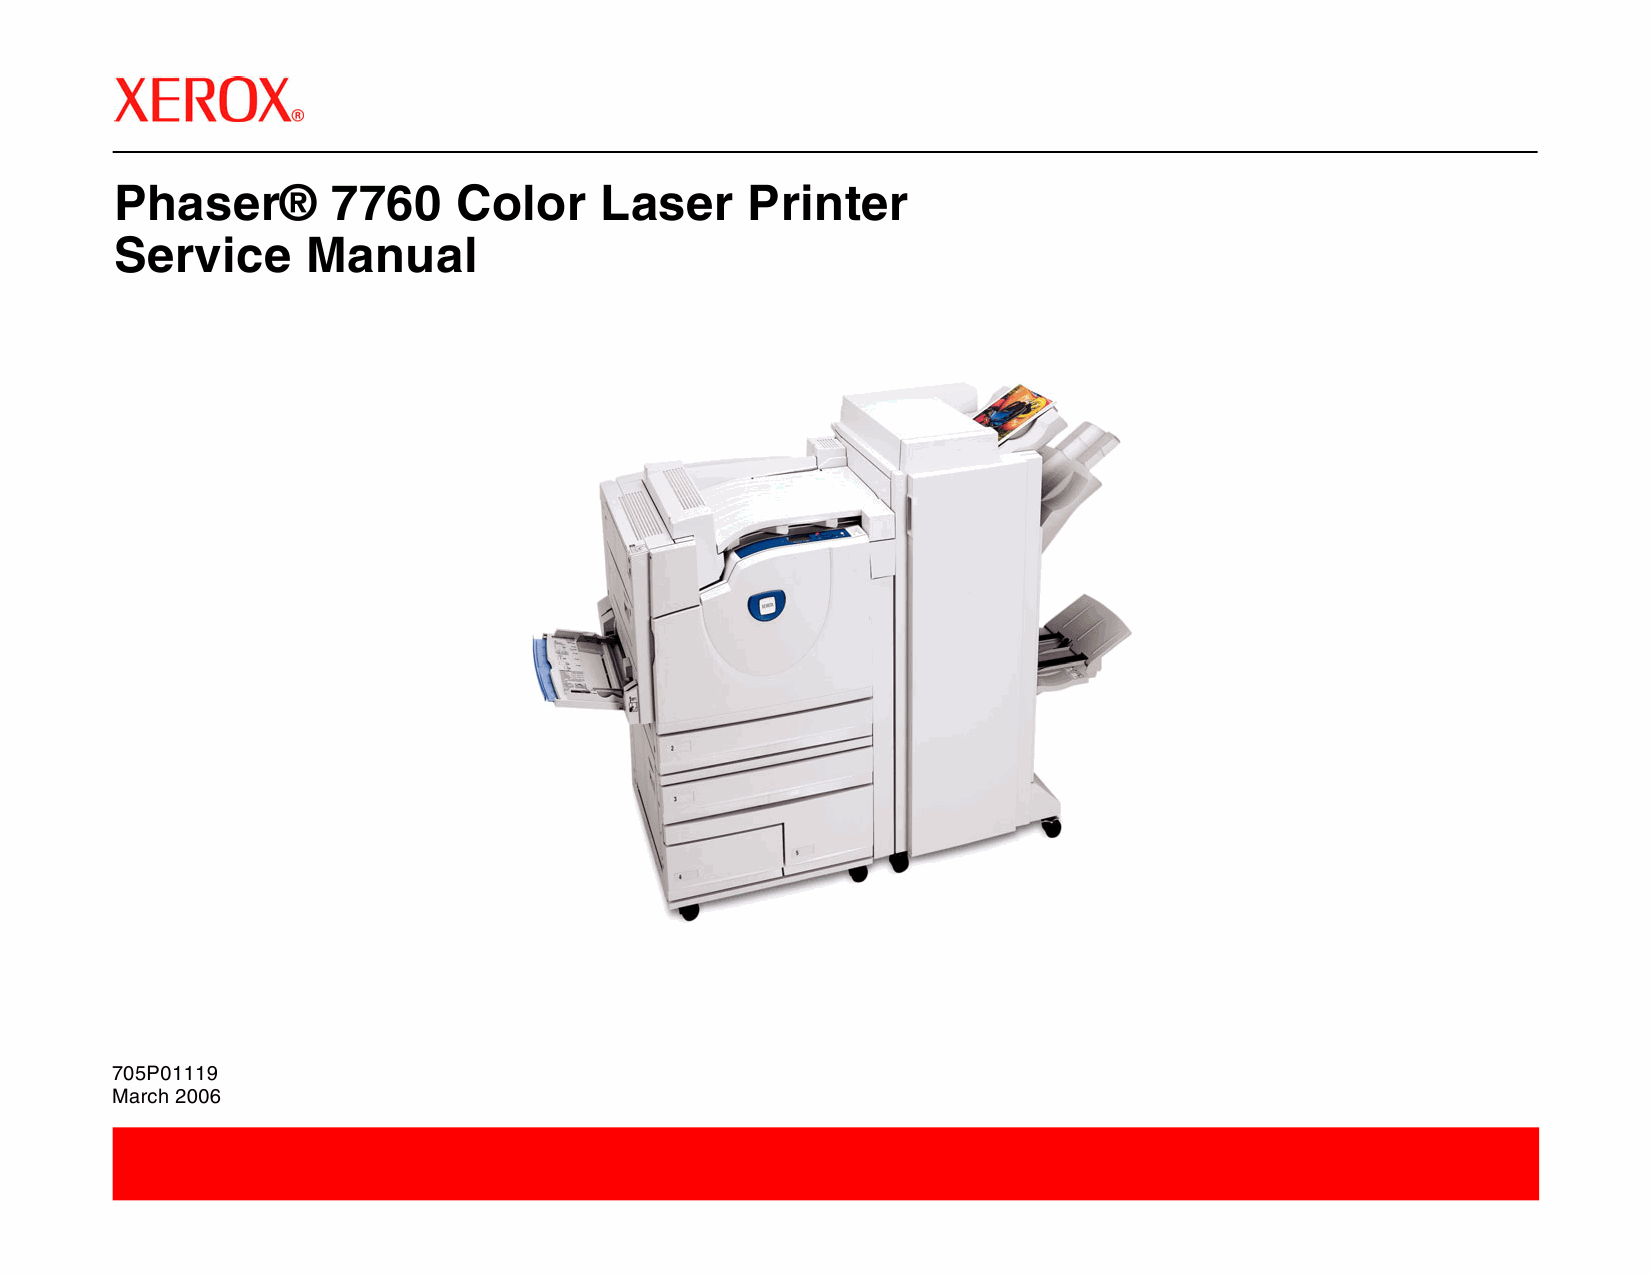 Xerox Phaser 7760 Parts List and Service Manual-1